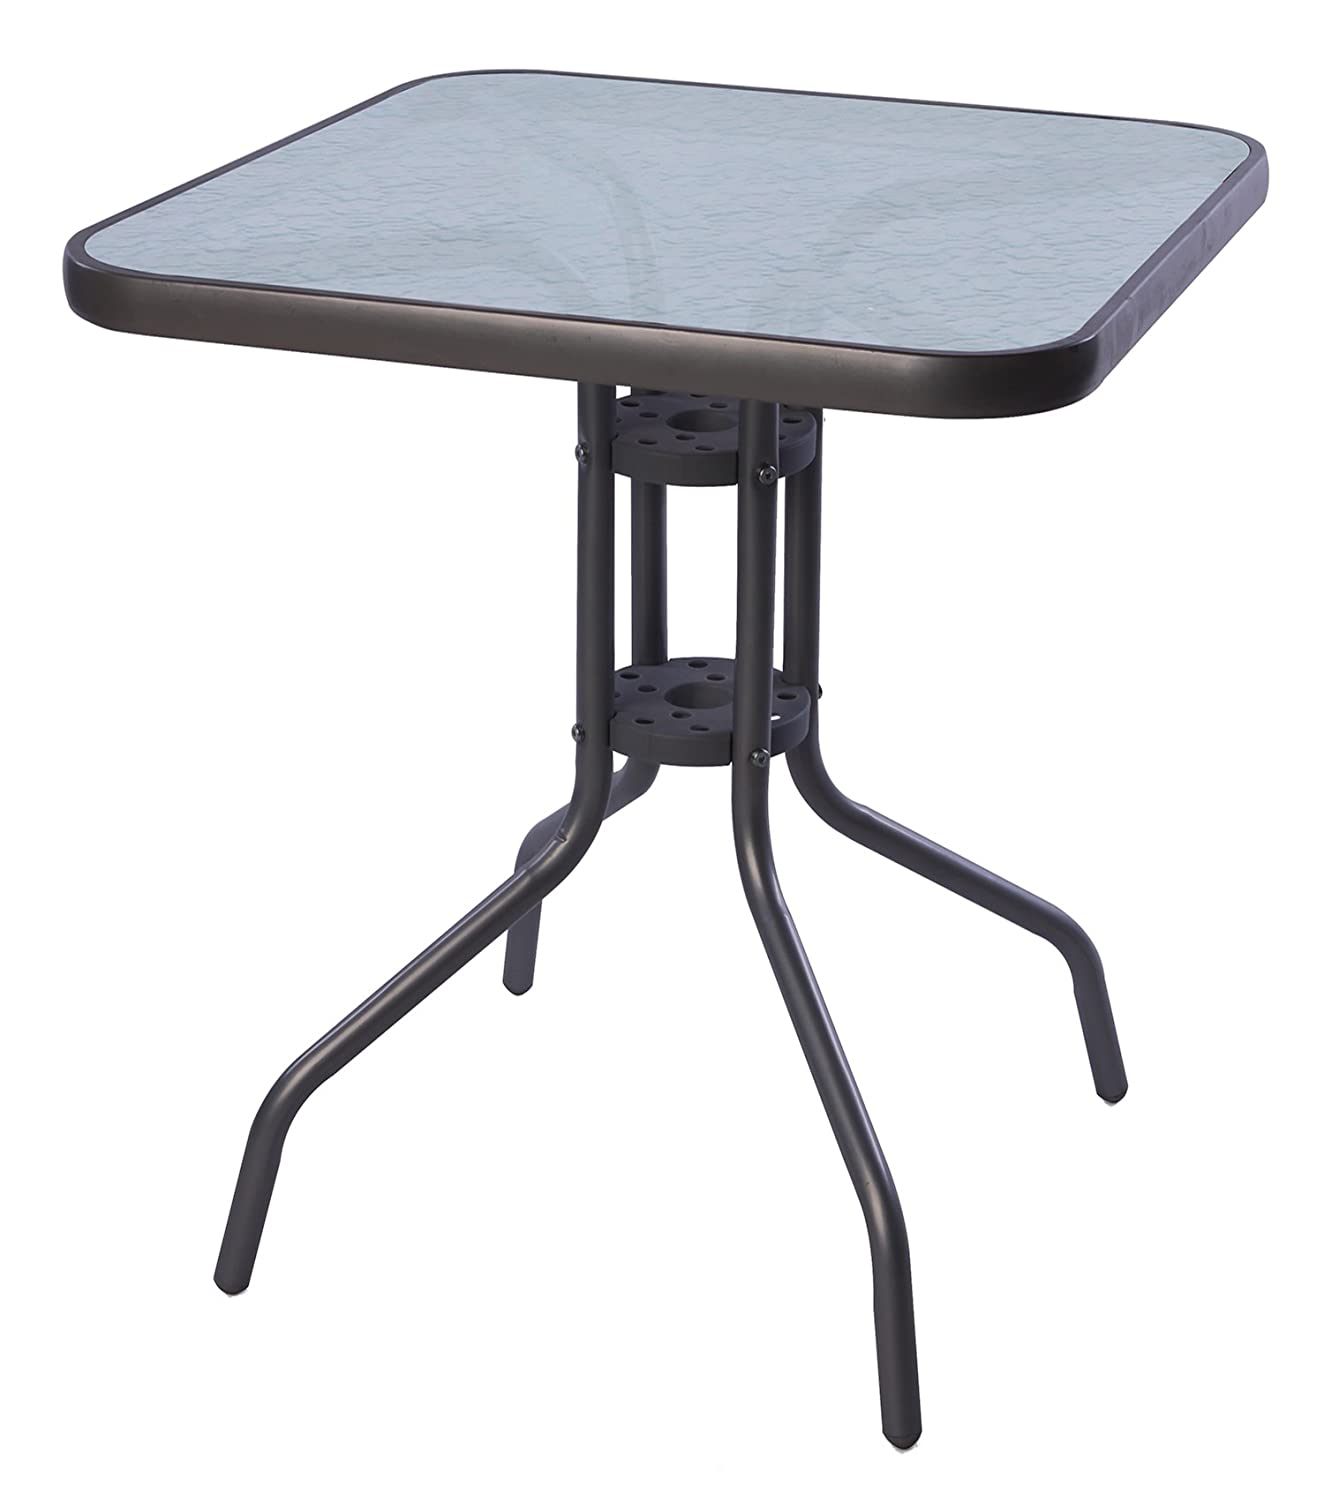 Bistro Table 60 x 60 cm Glass/Metal Anthracite/Dark Grey Balcony Table/Garden Table Mojawo